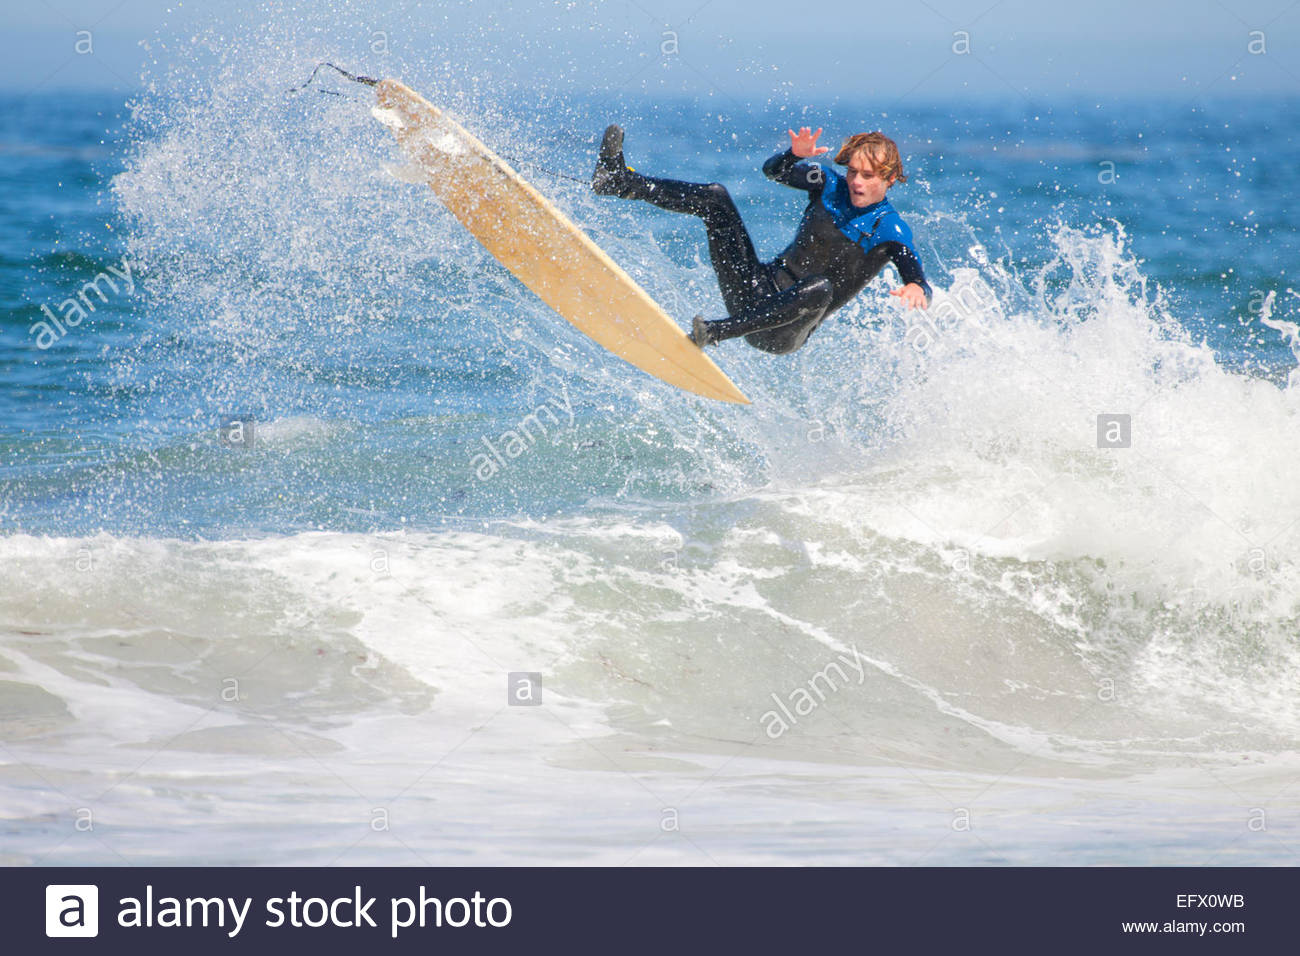 Surfer, mid air, falling off surfboard - Stock Image